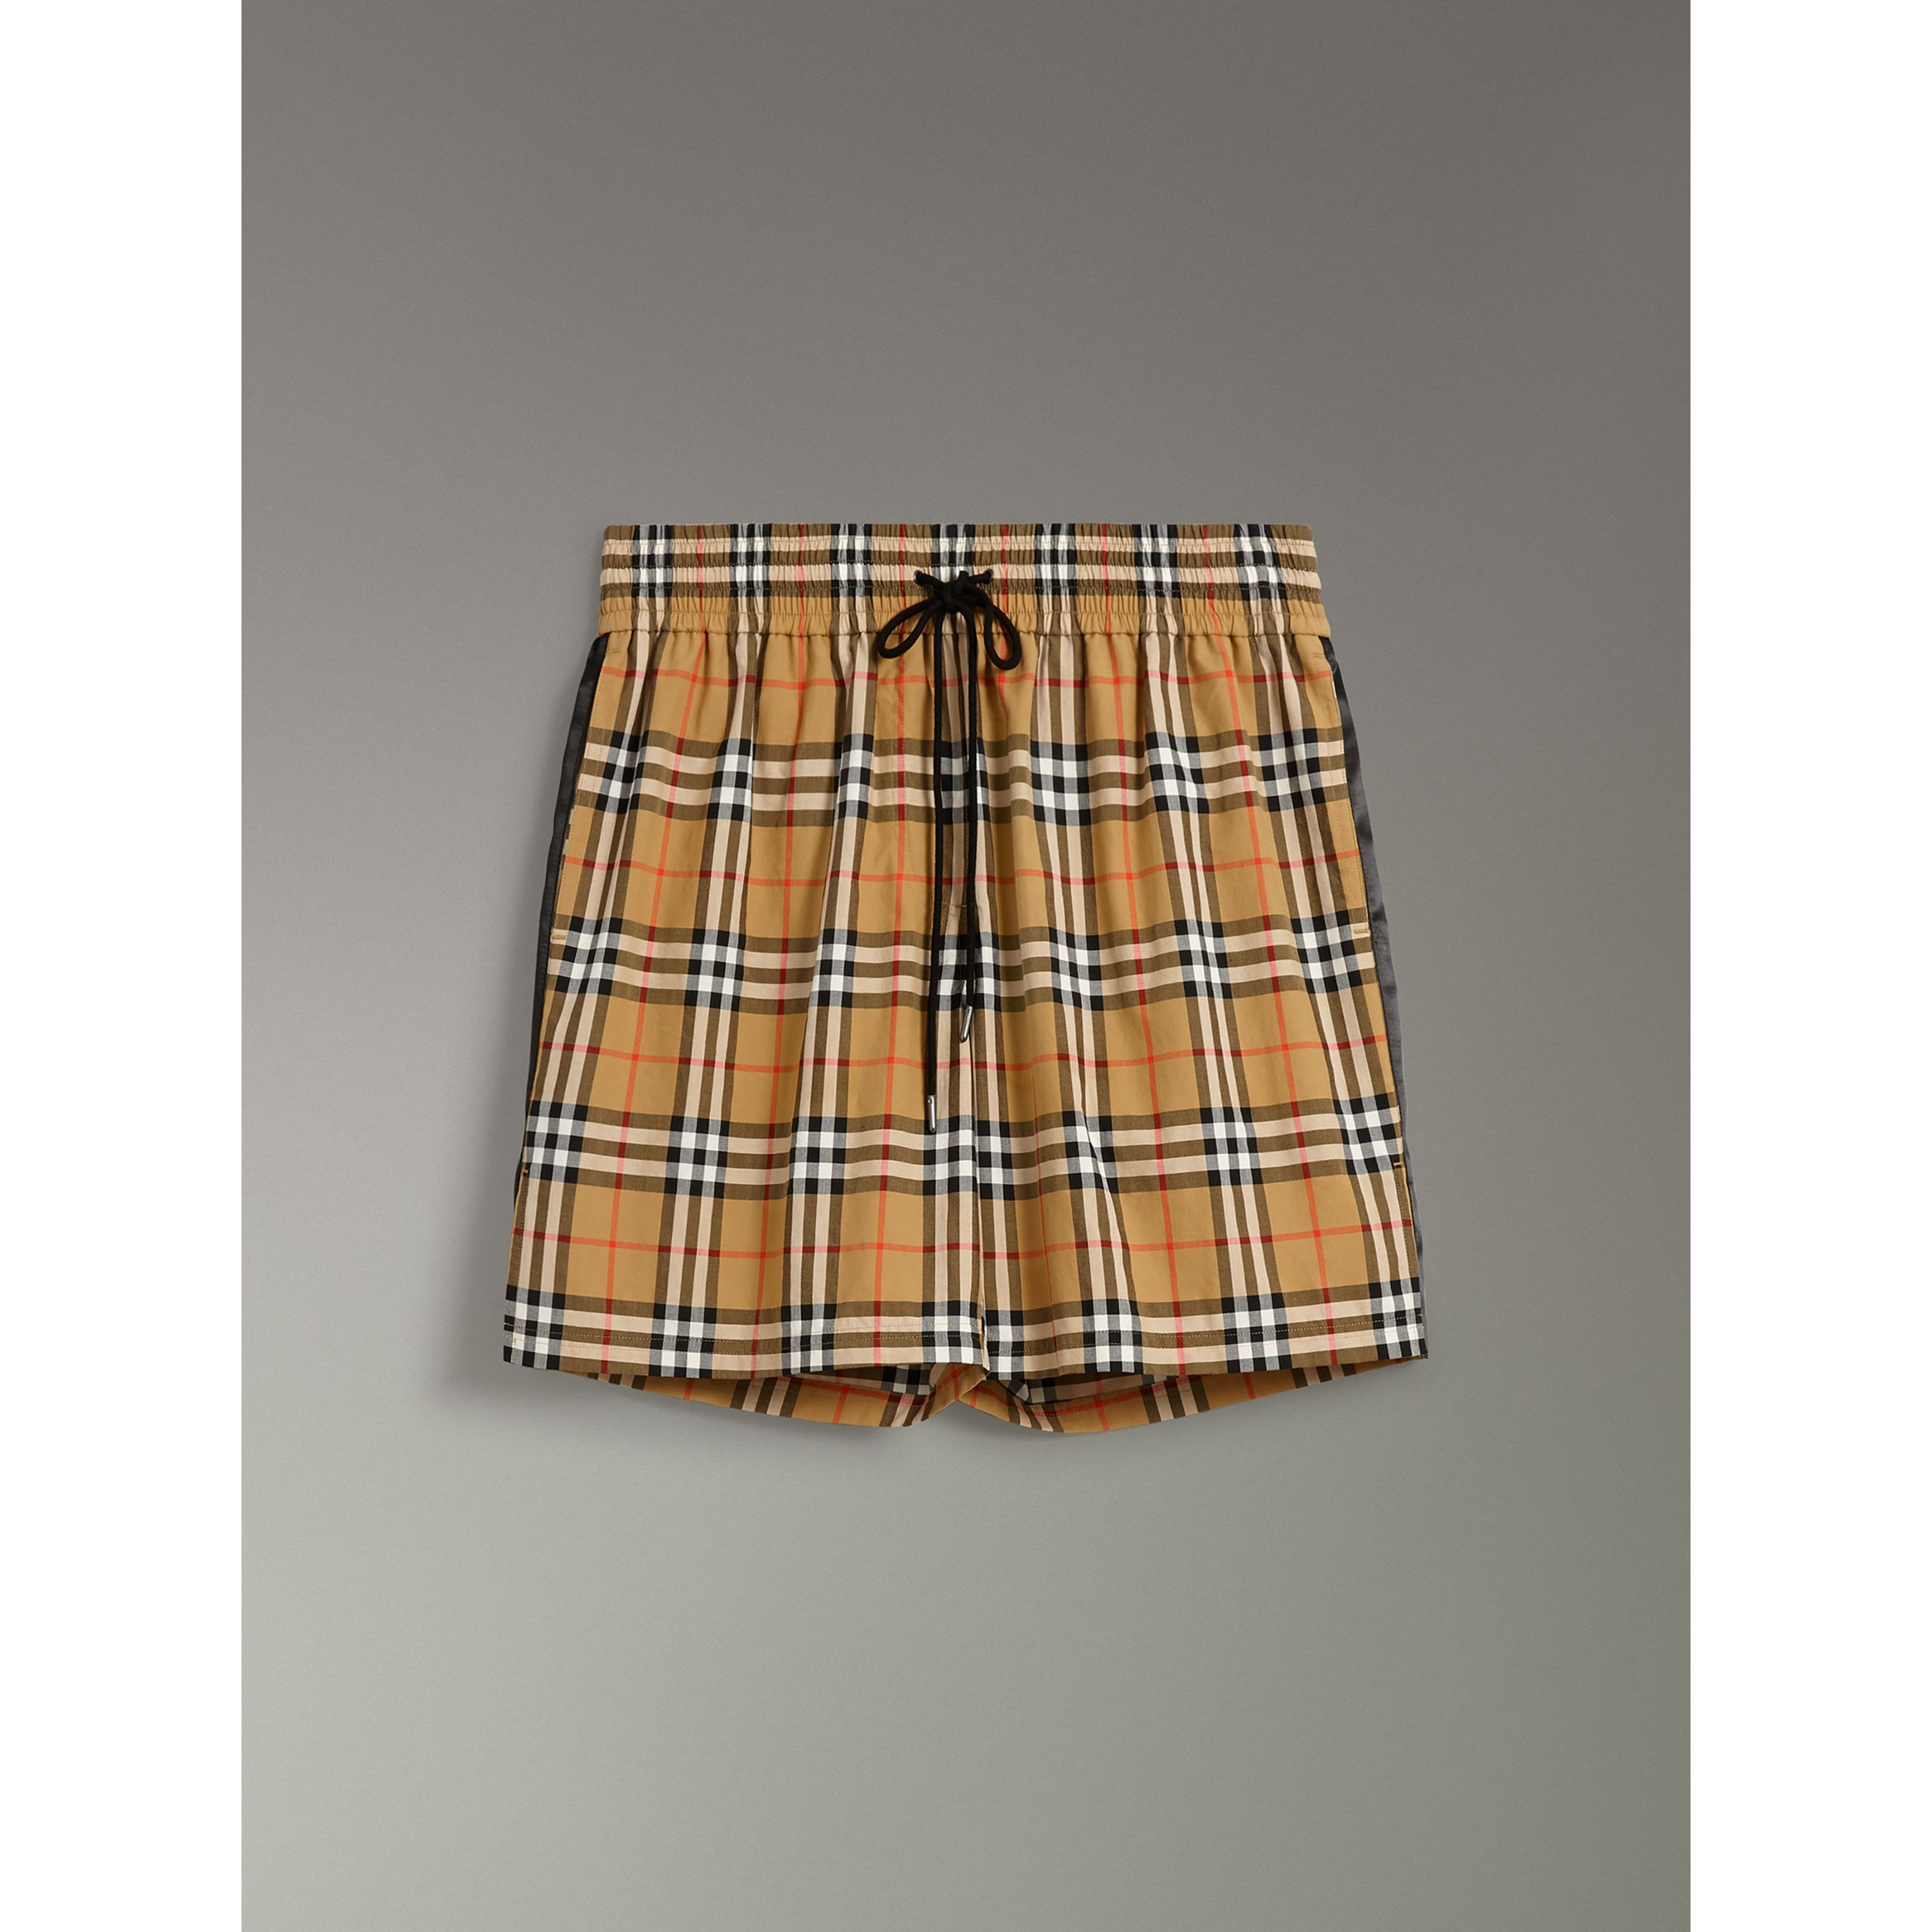 Vintage Check Drawstring Shorts in Antique Yellow - Women | Burberry - 4